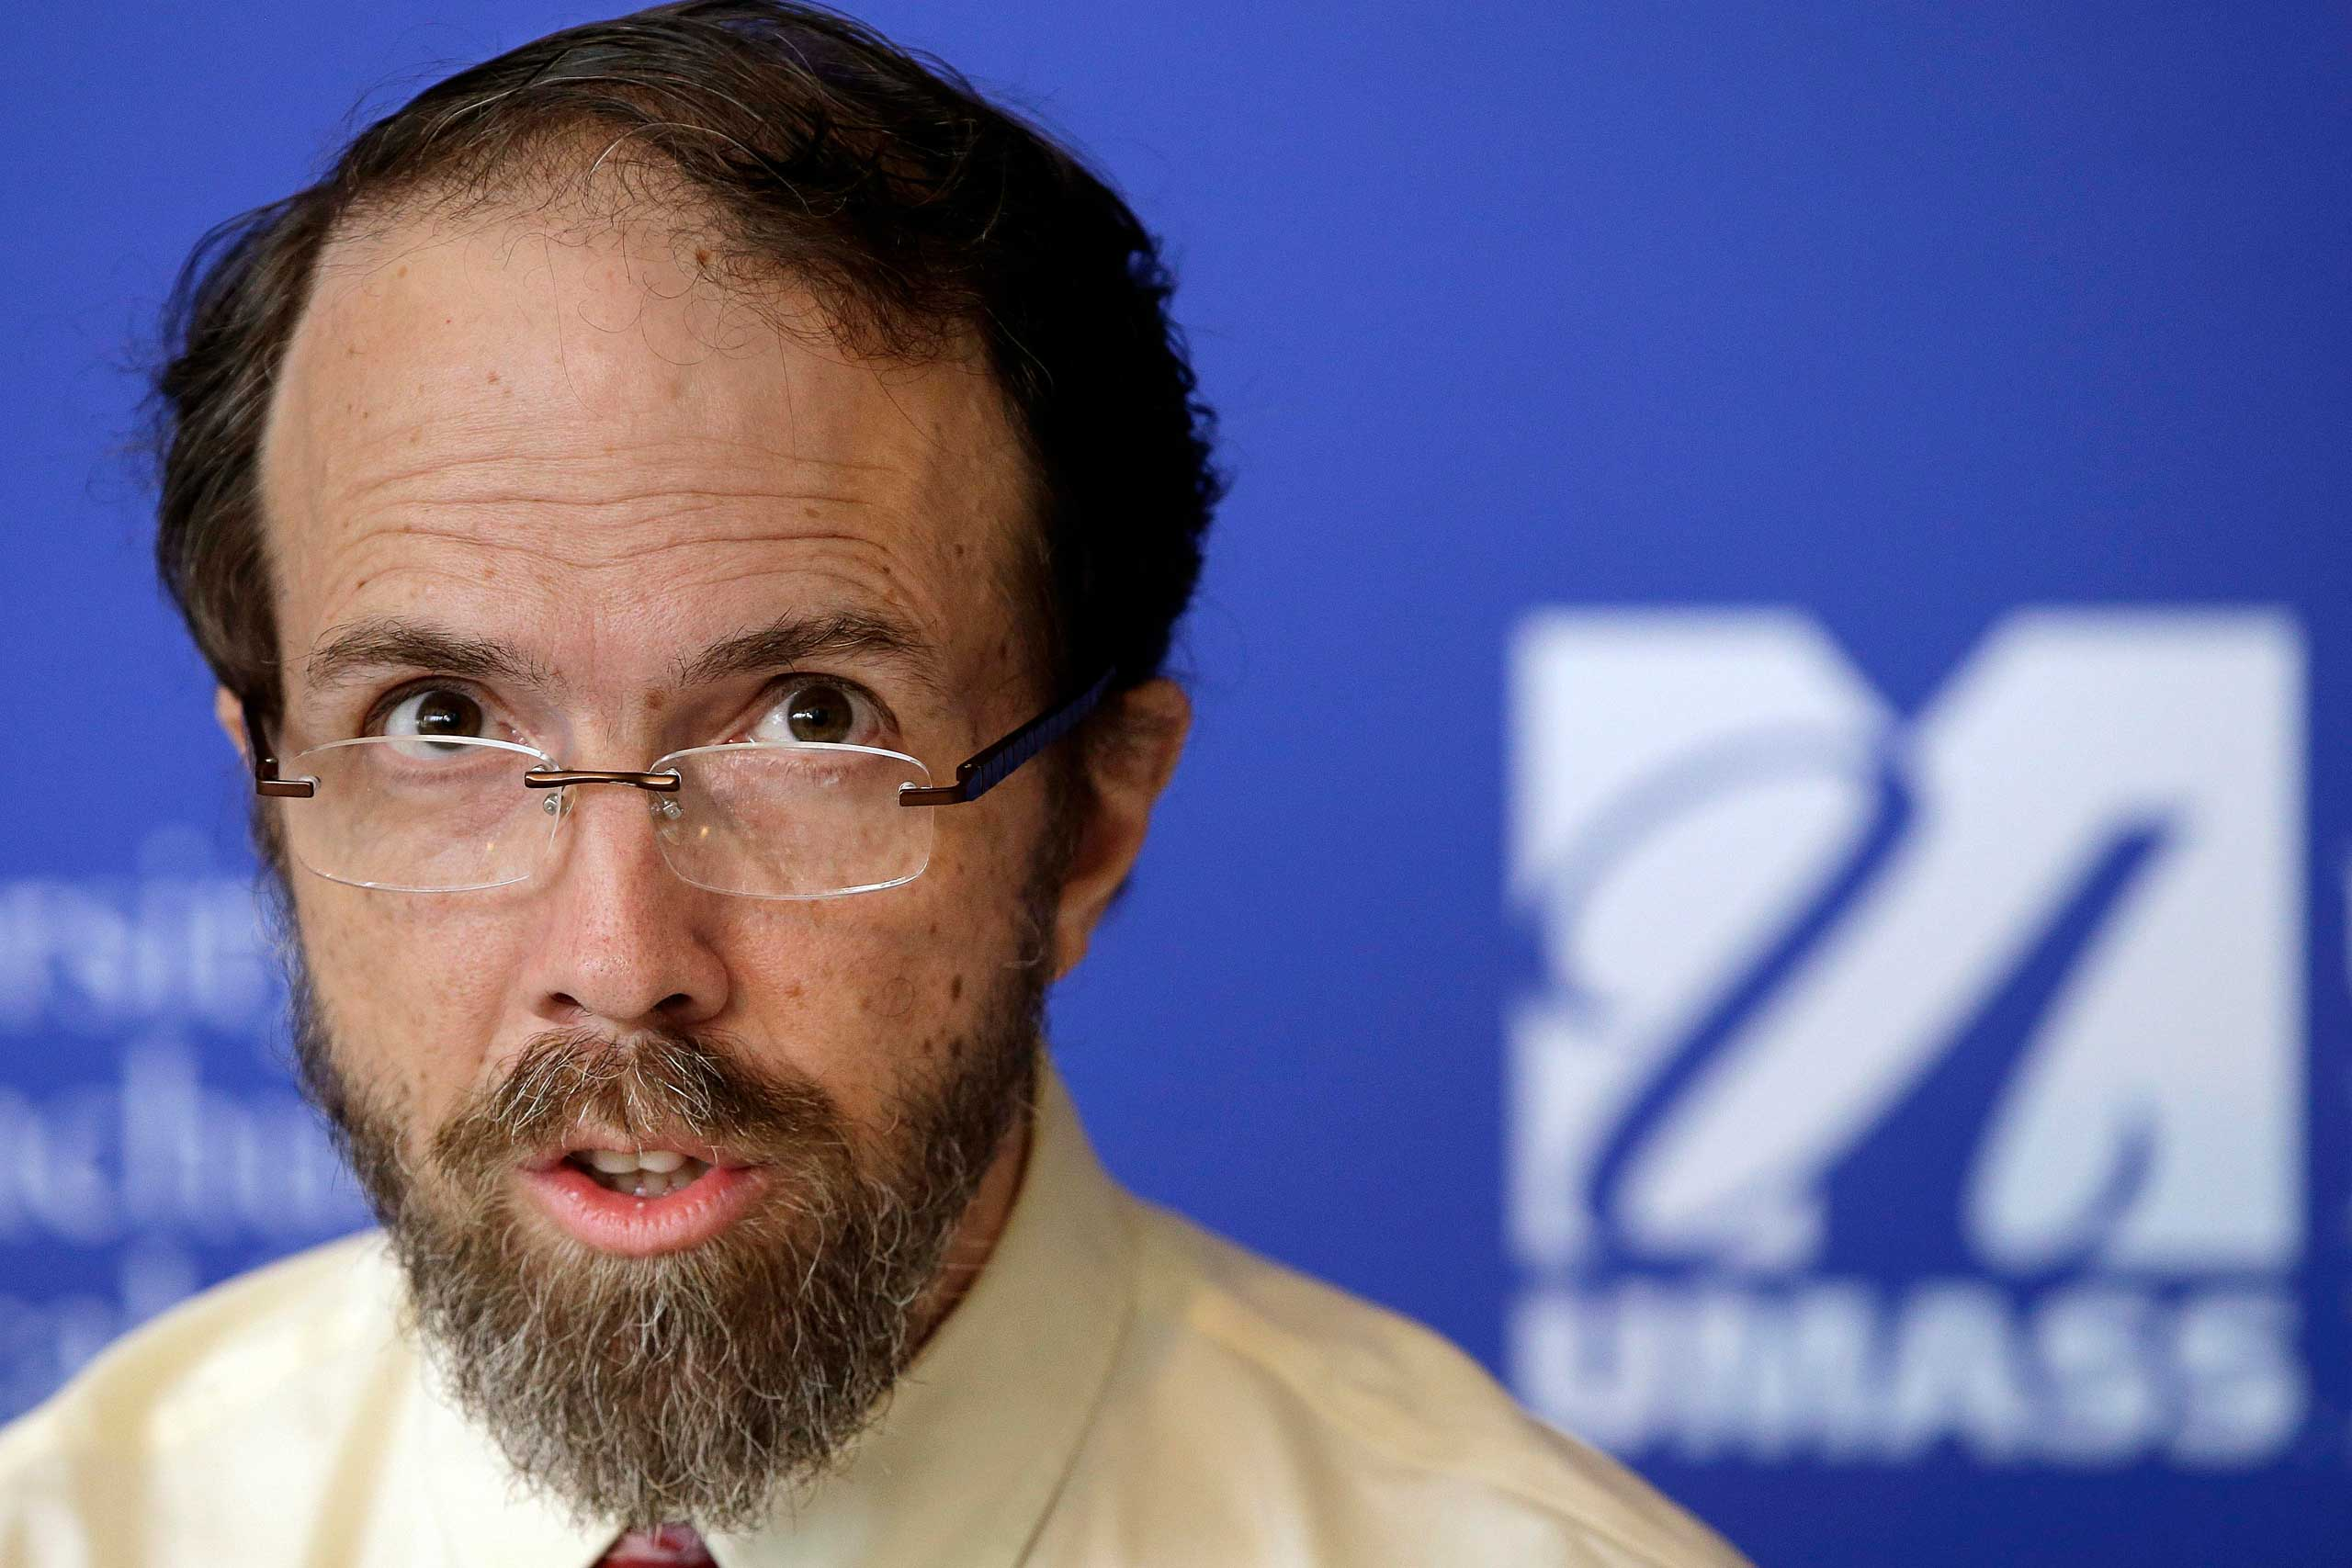 Dr. Rick Sacra, an American doctor who contracted the Ebola virus in Africa in September of 2014.